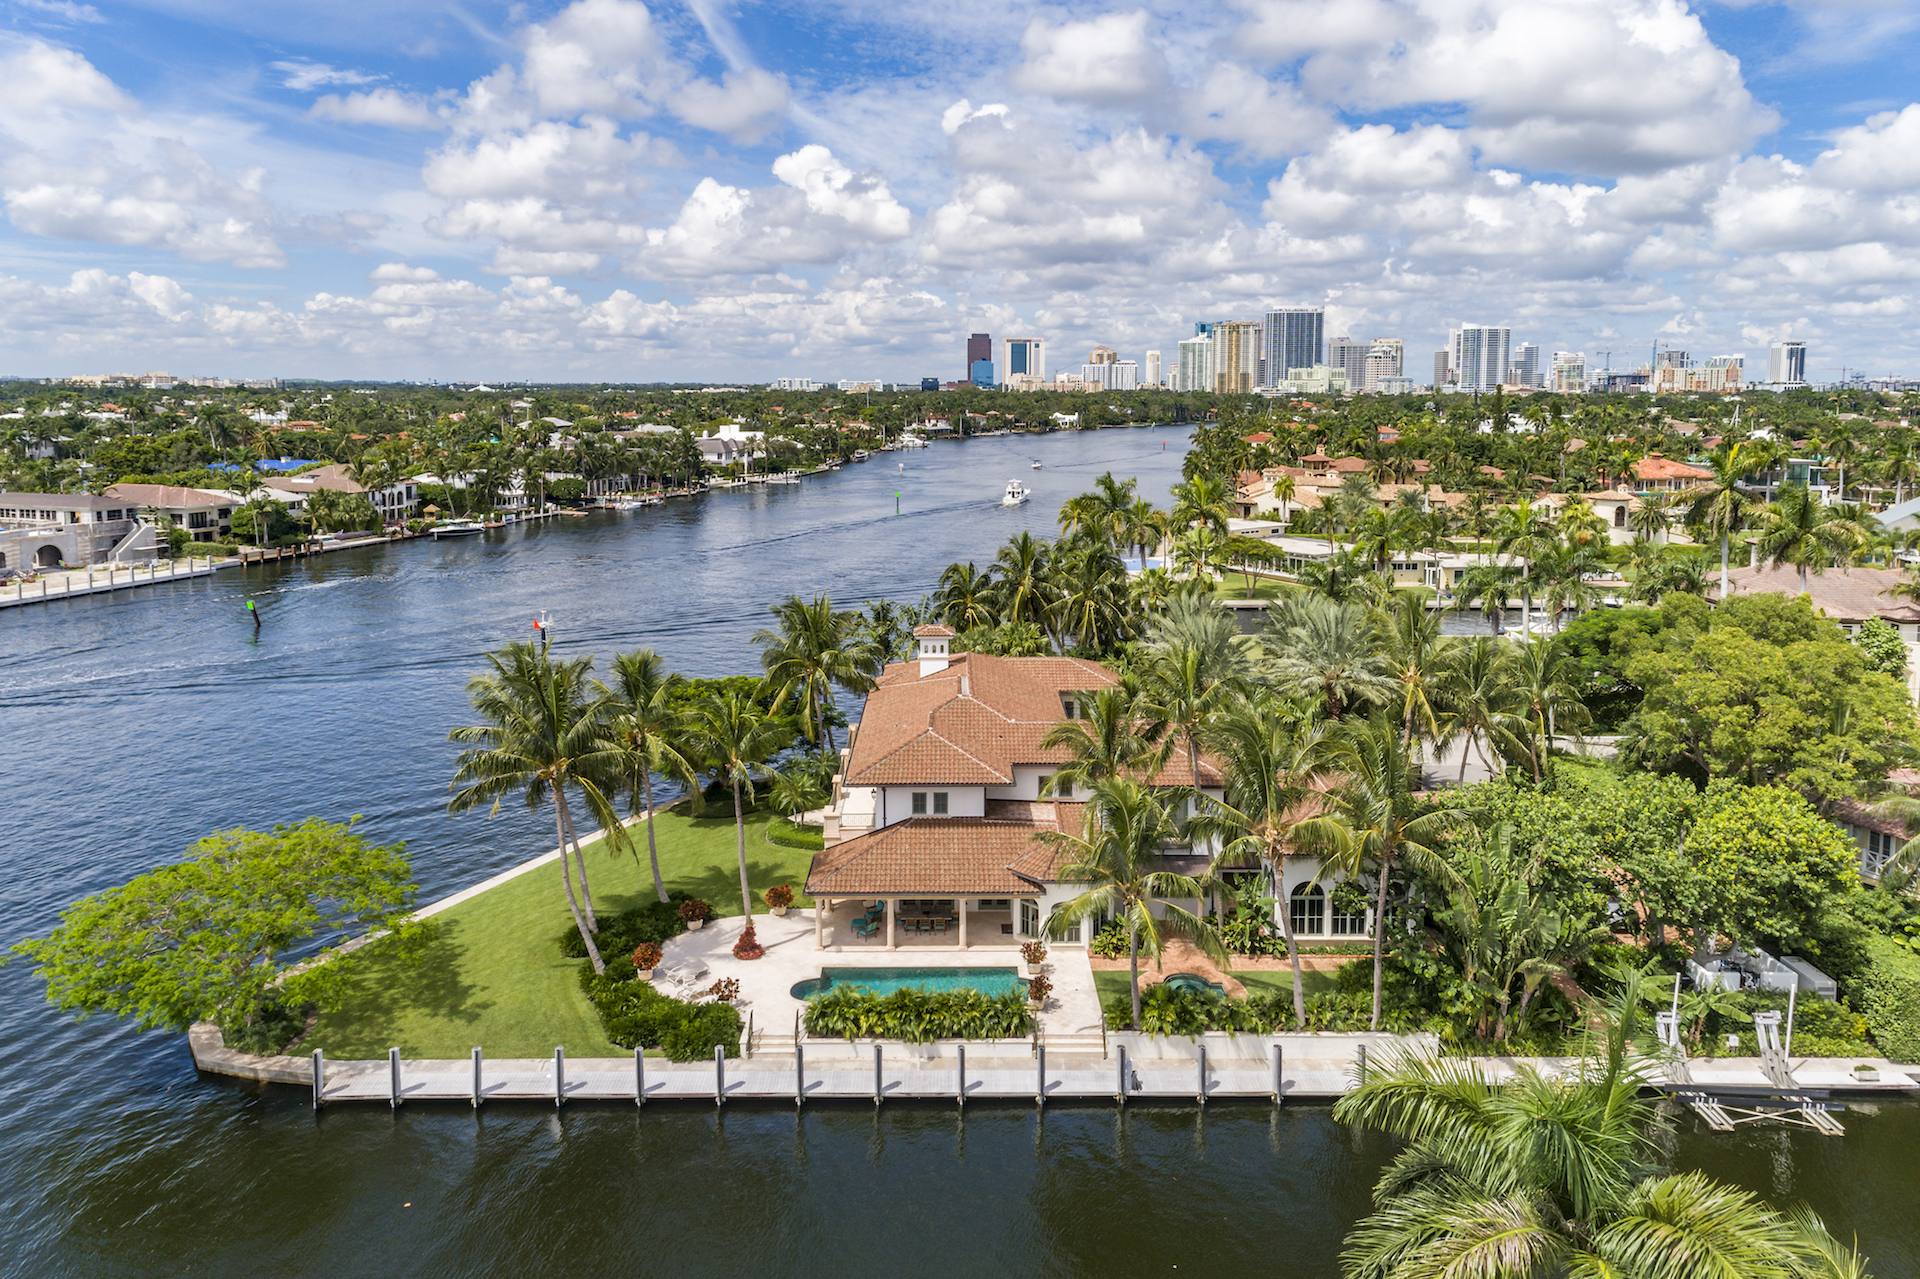 Las Olas Real Estate | Tim Elmes Real Estate